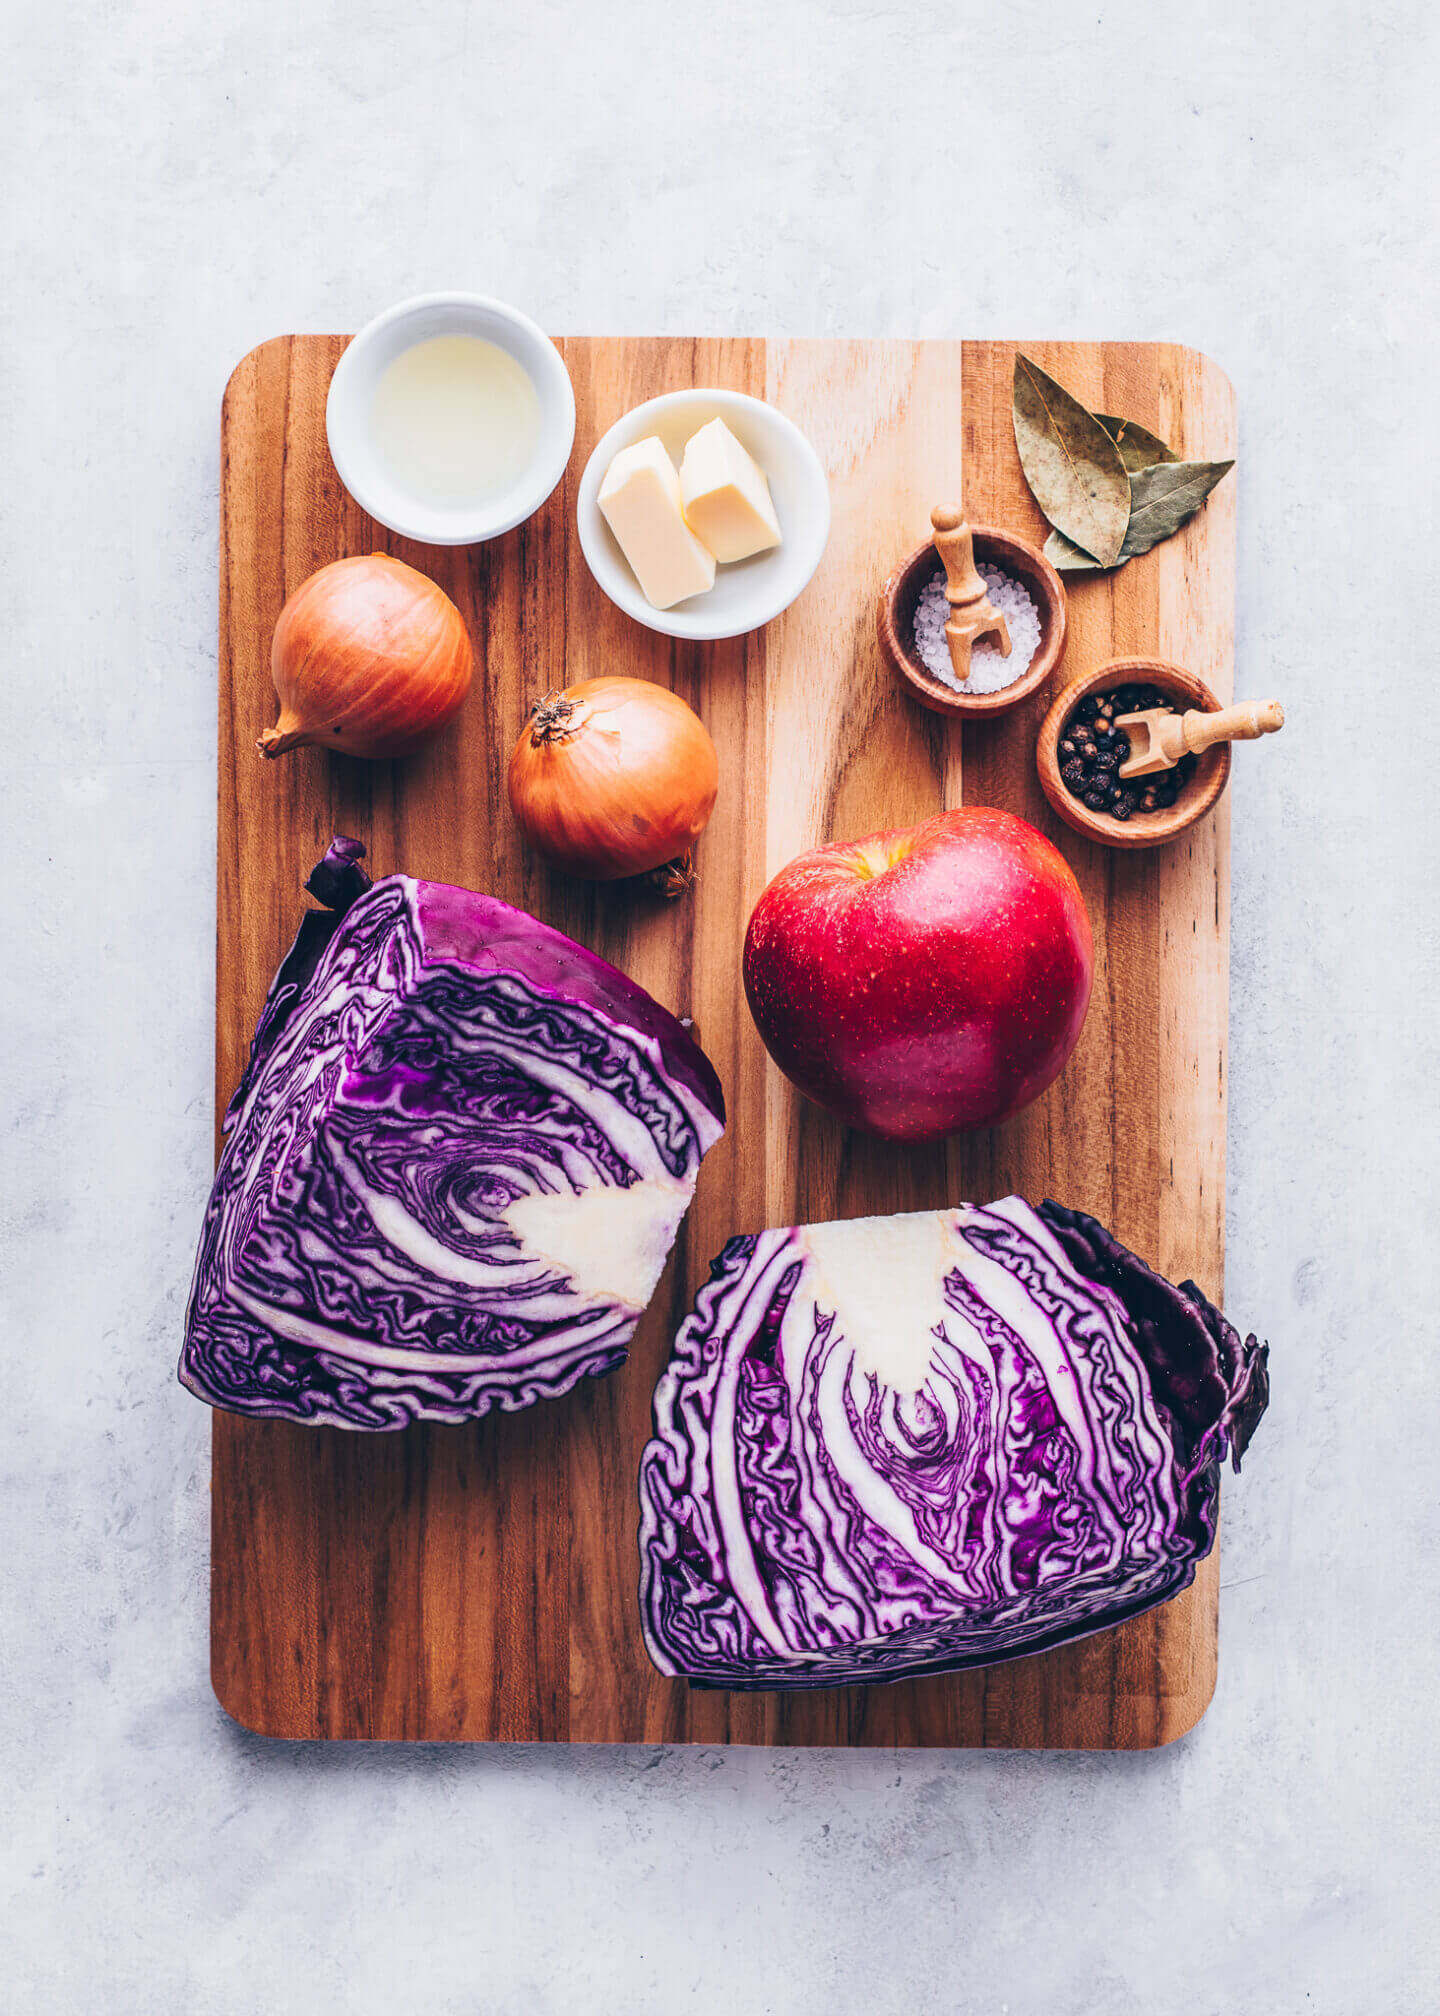 Ingredients for Braised Red Cabbage with Apples